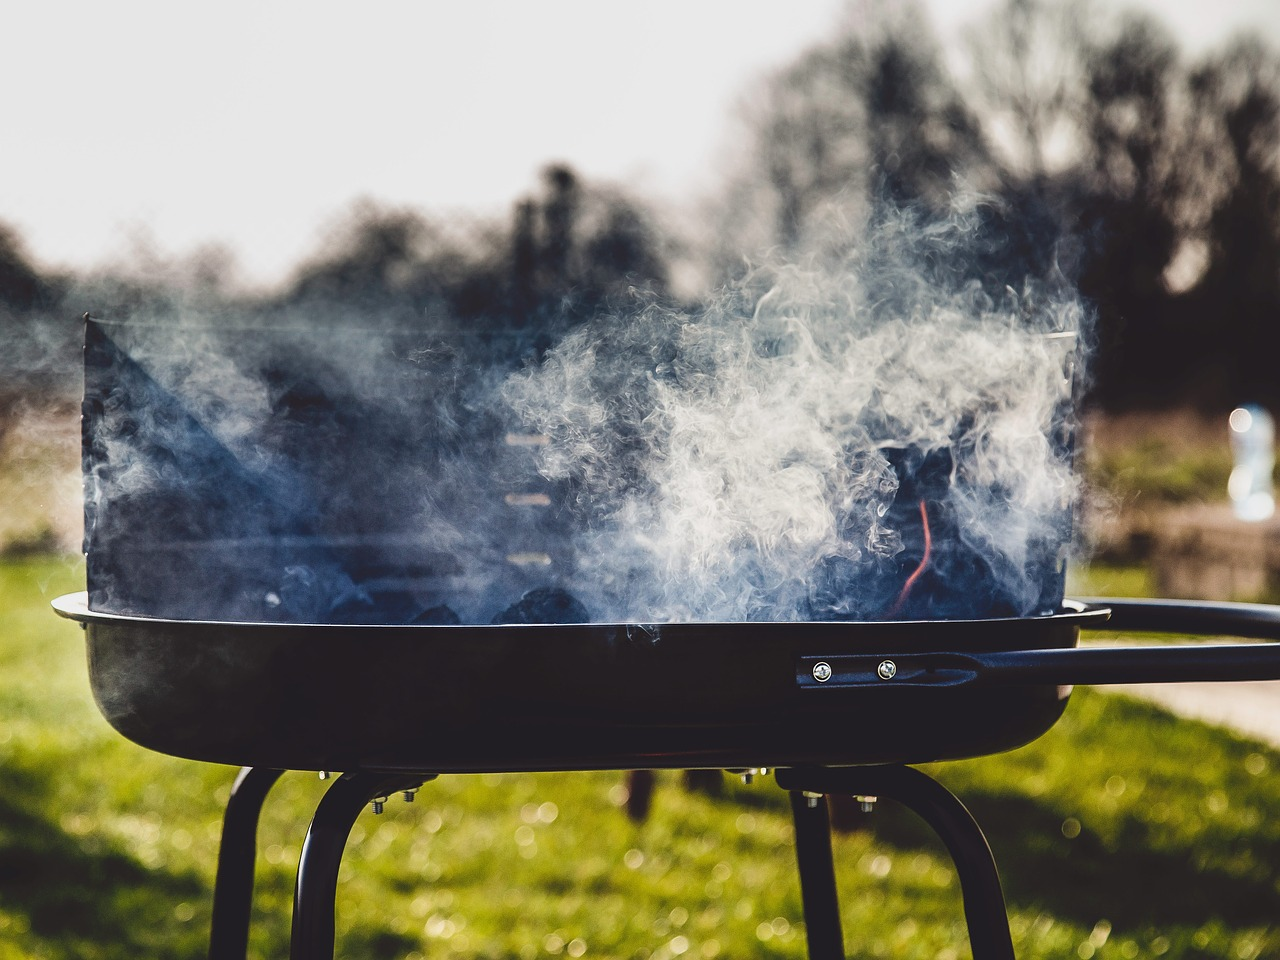 grill, smoke, barbecue